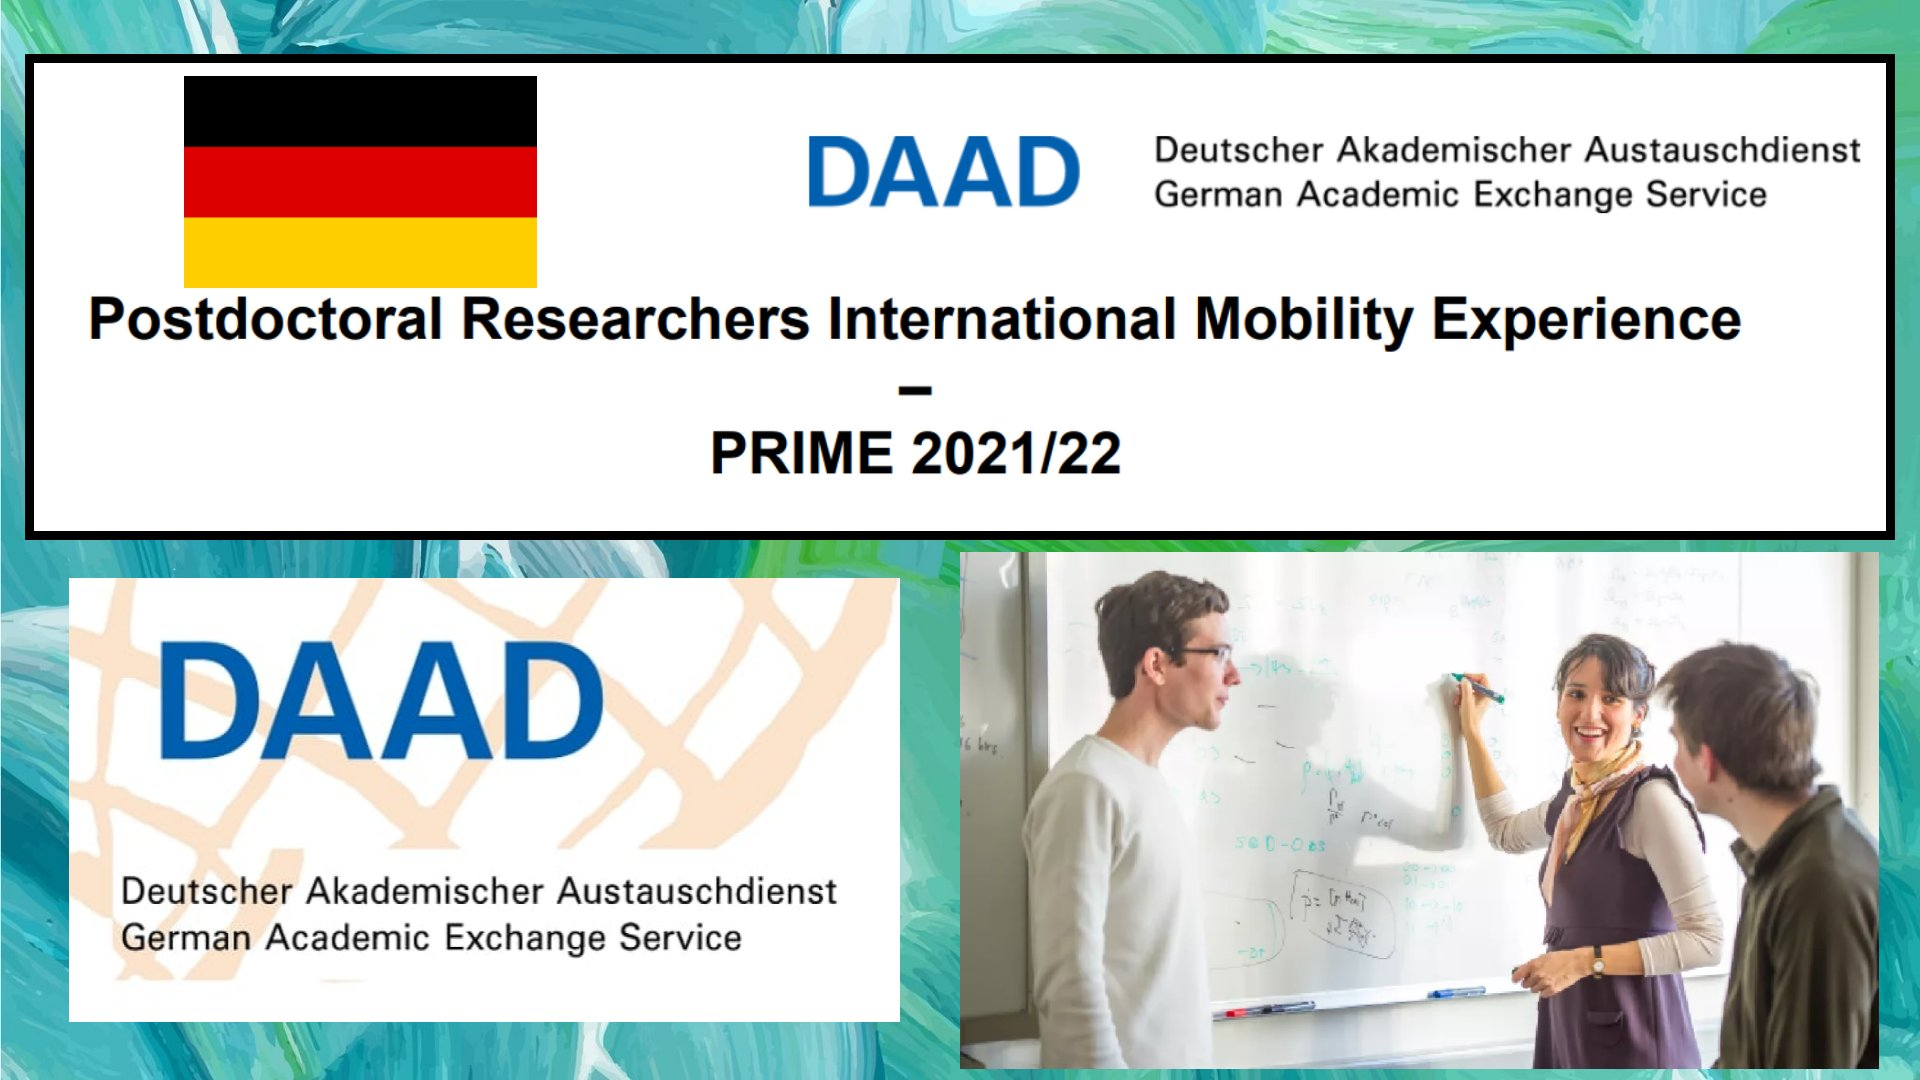 Postdoctoral Researchers International Mobility Experience (PRIME) Programme in Germany